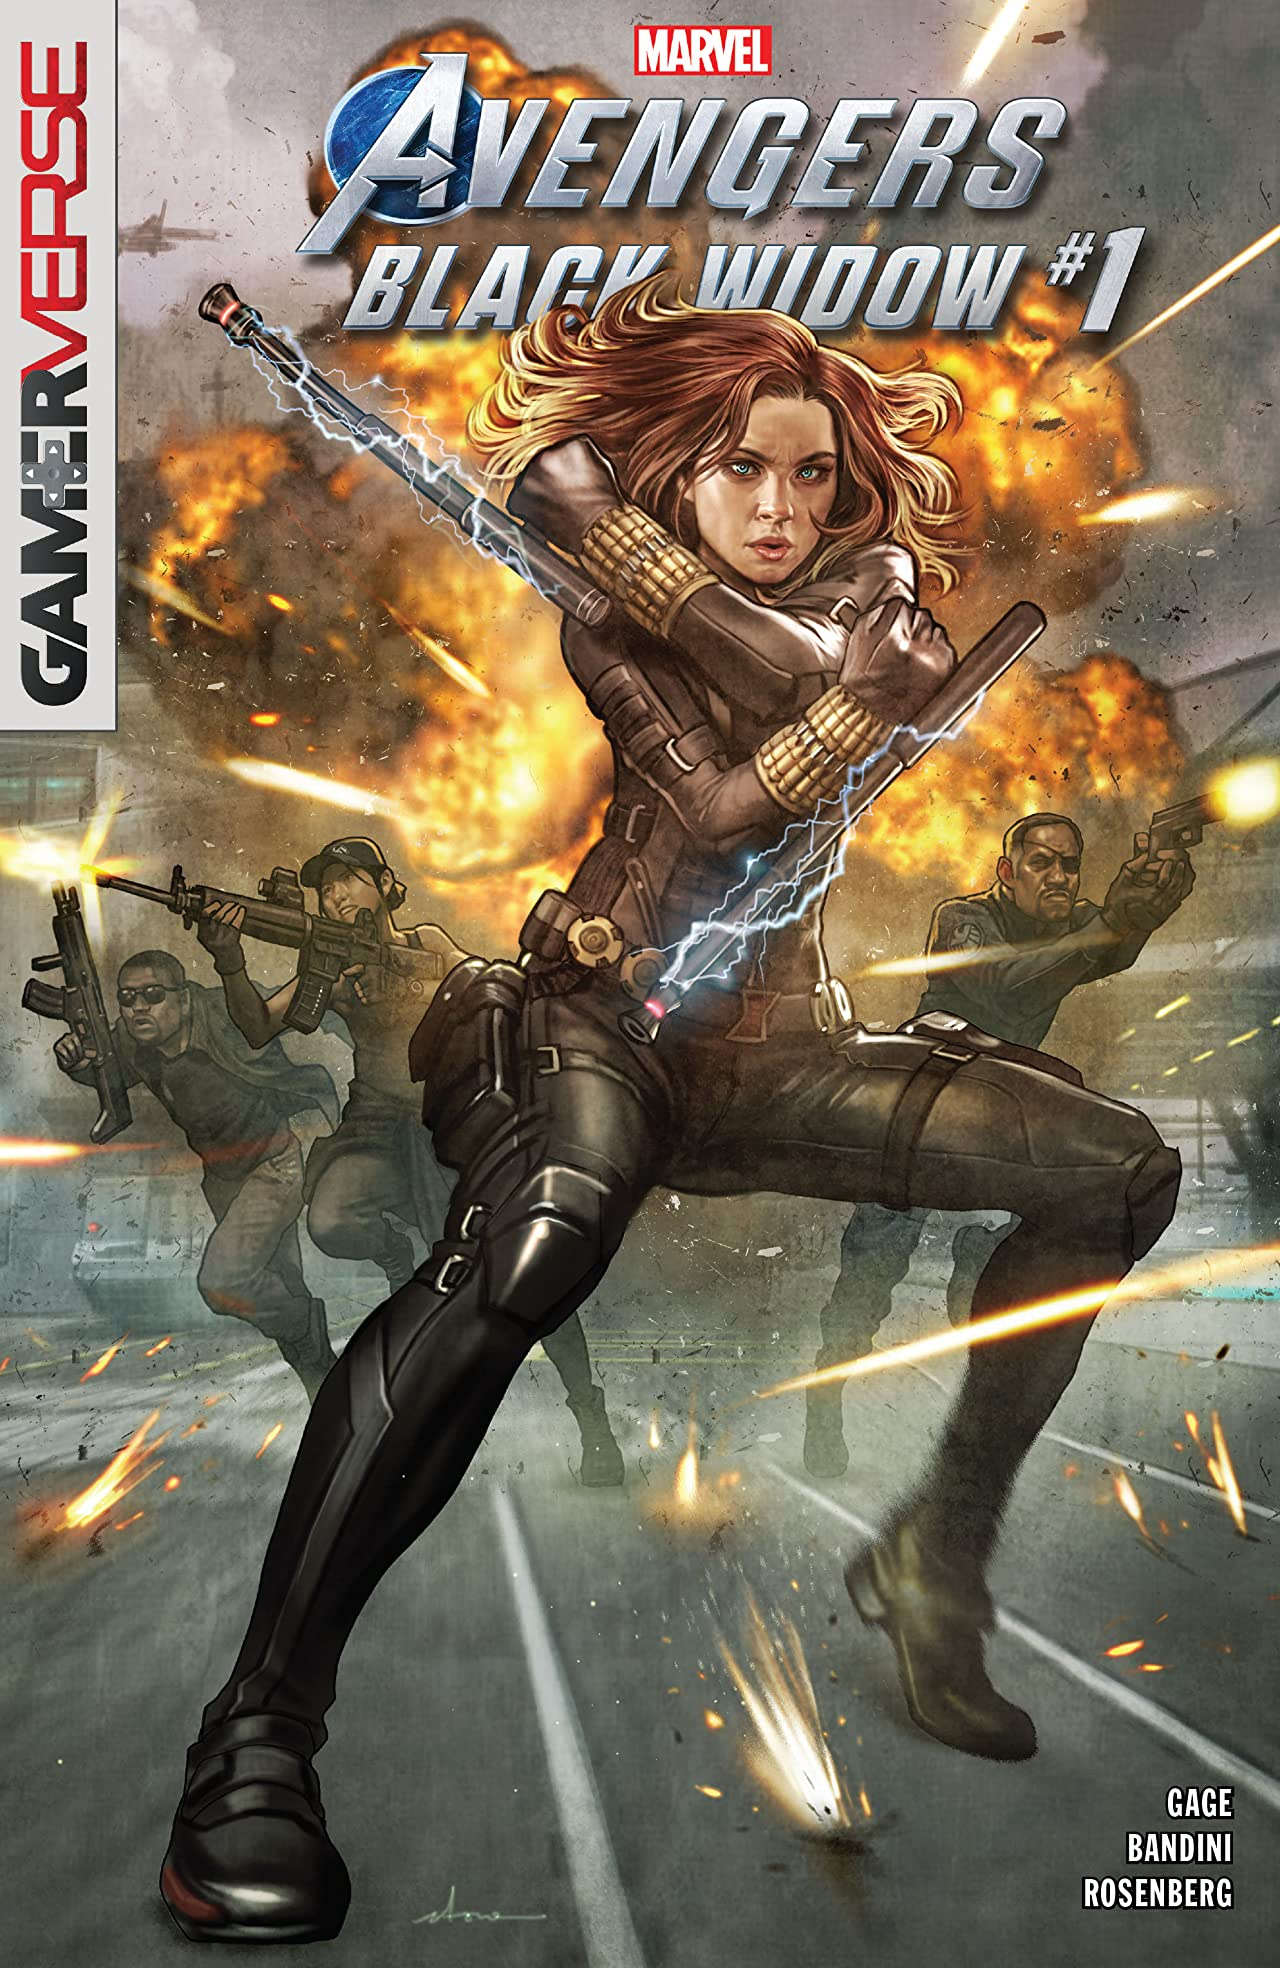 Marvel's Avengers: Black Widow Vol 1 1